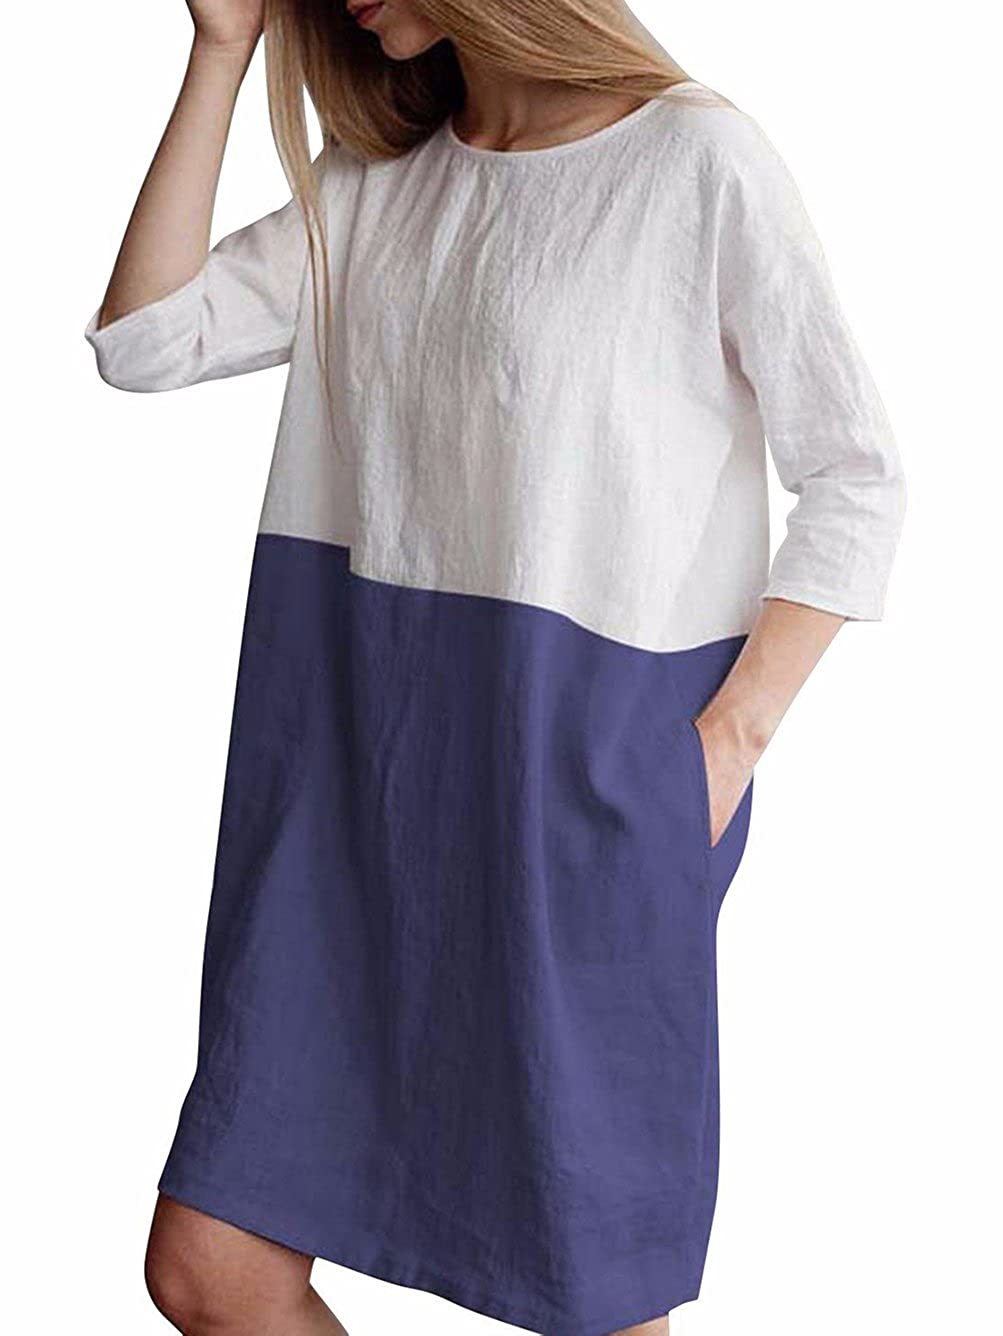 Famulily Women's Oversized 3 4 Sleeve Two Tone Colors Loose T Shirt Dress with Pockets 242143F2